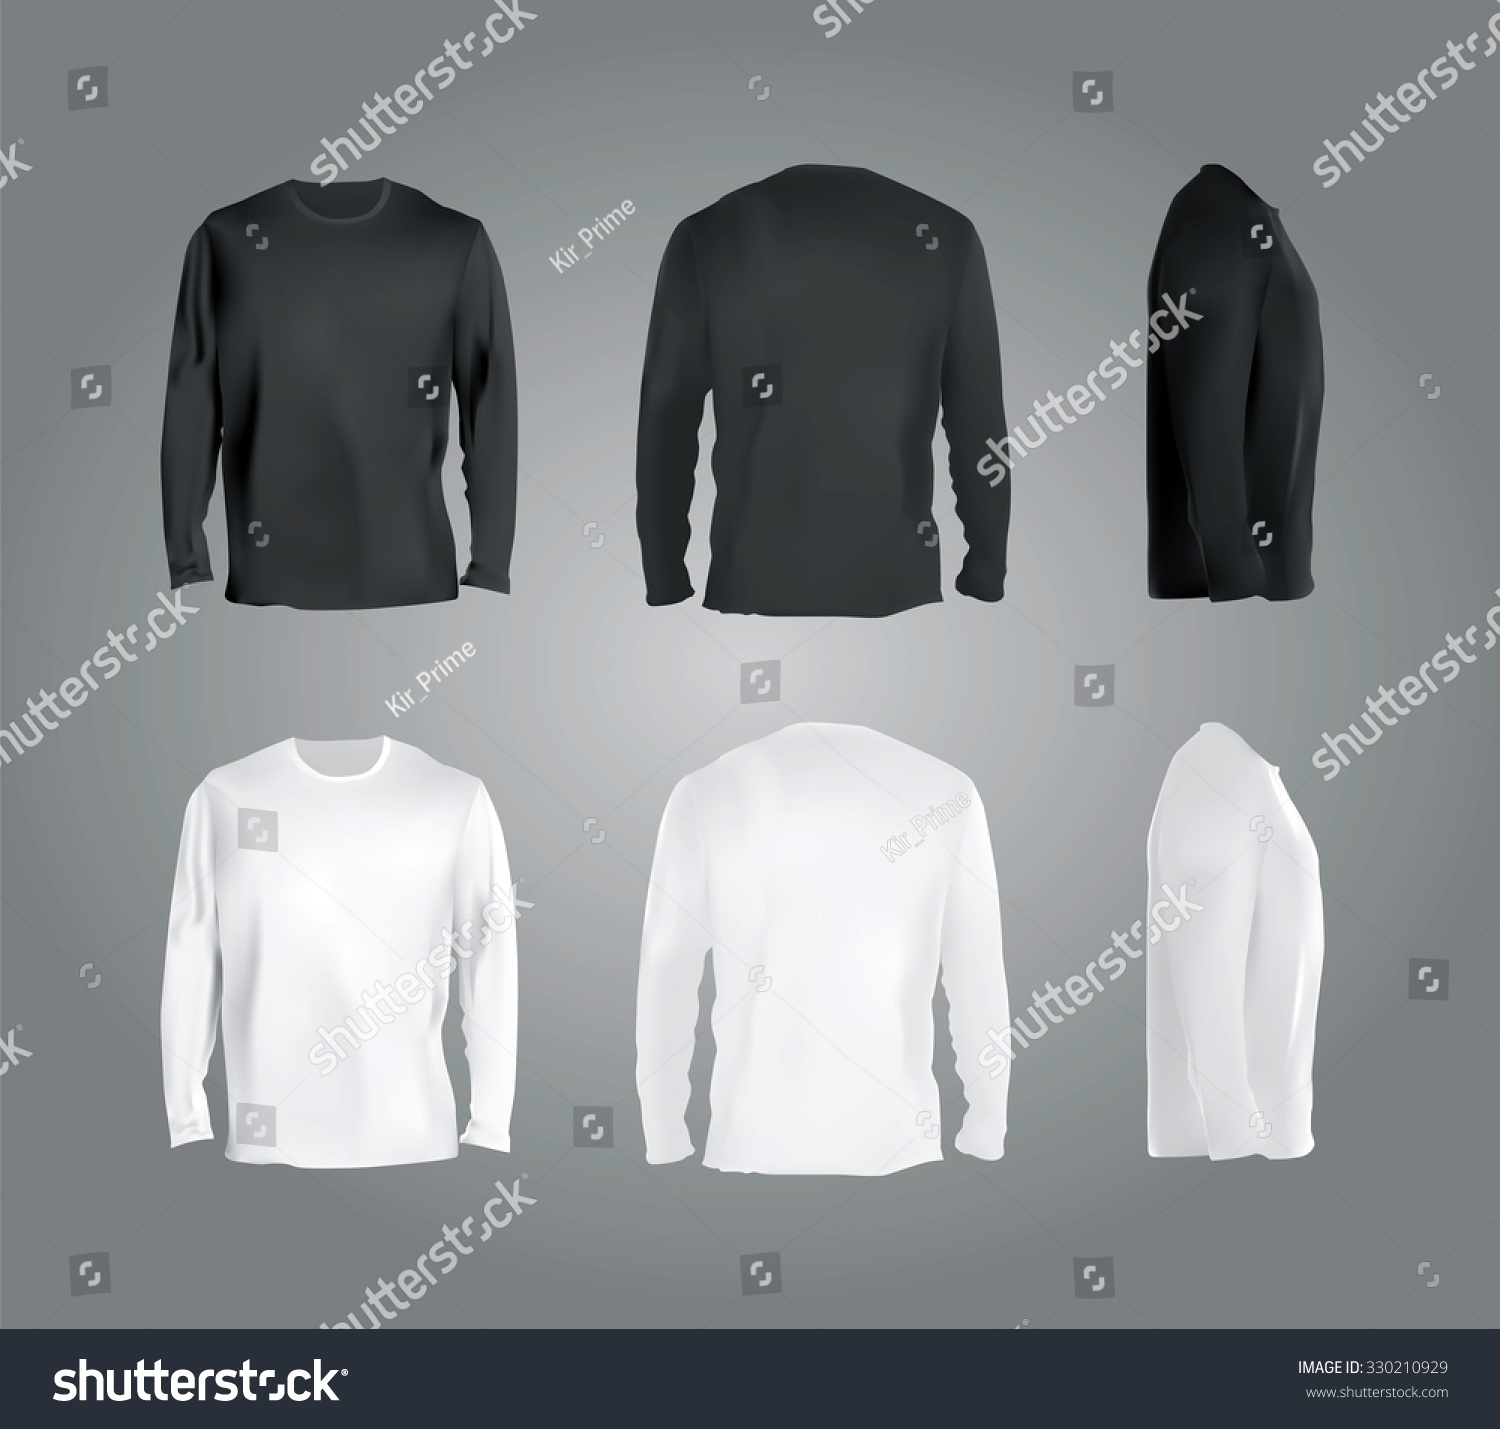 White t shirt front and back template - Long Sleeved T Shirt Templates Collection Front Back Side Views Black